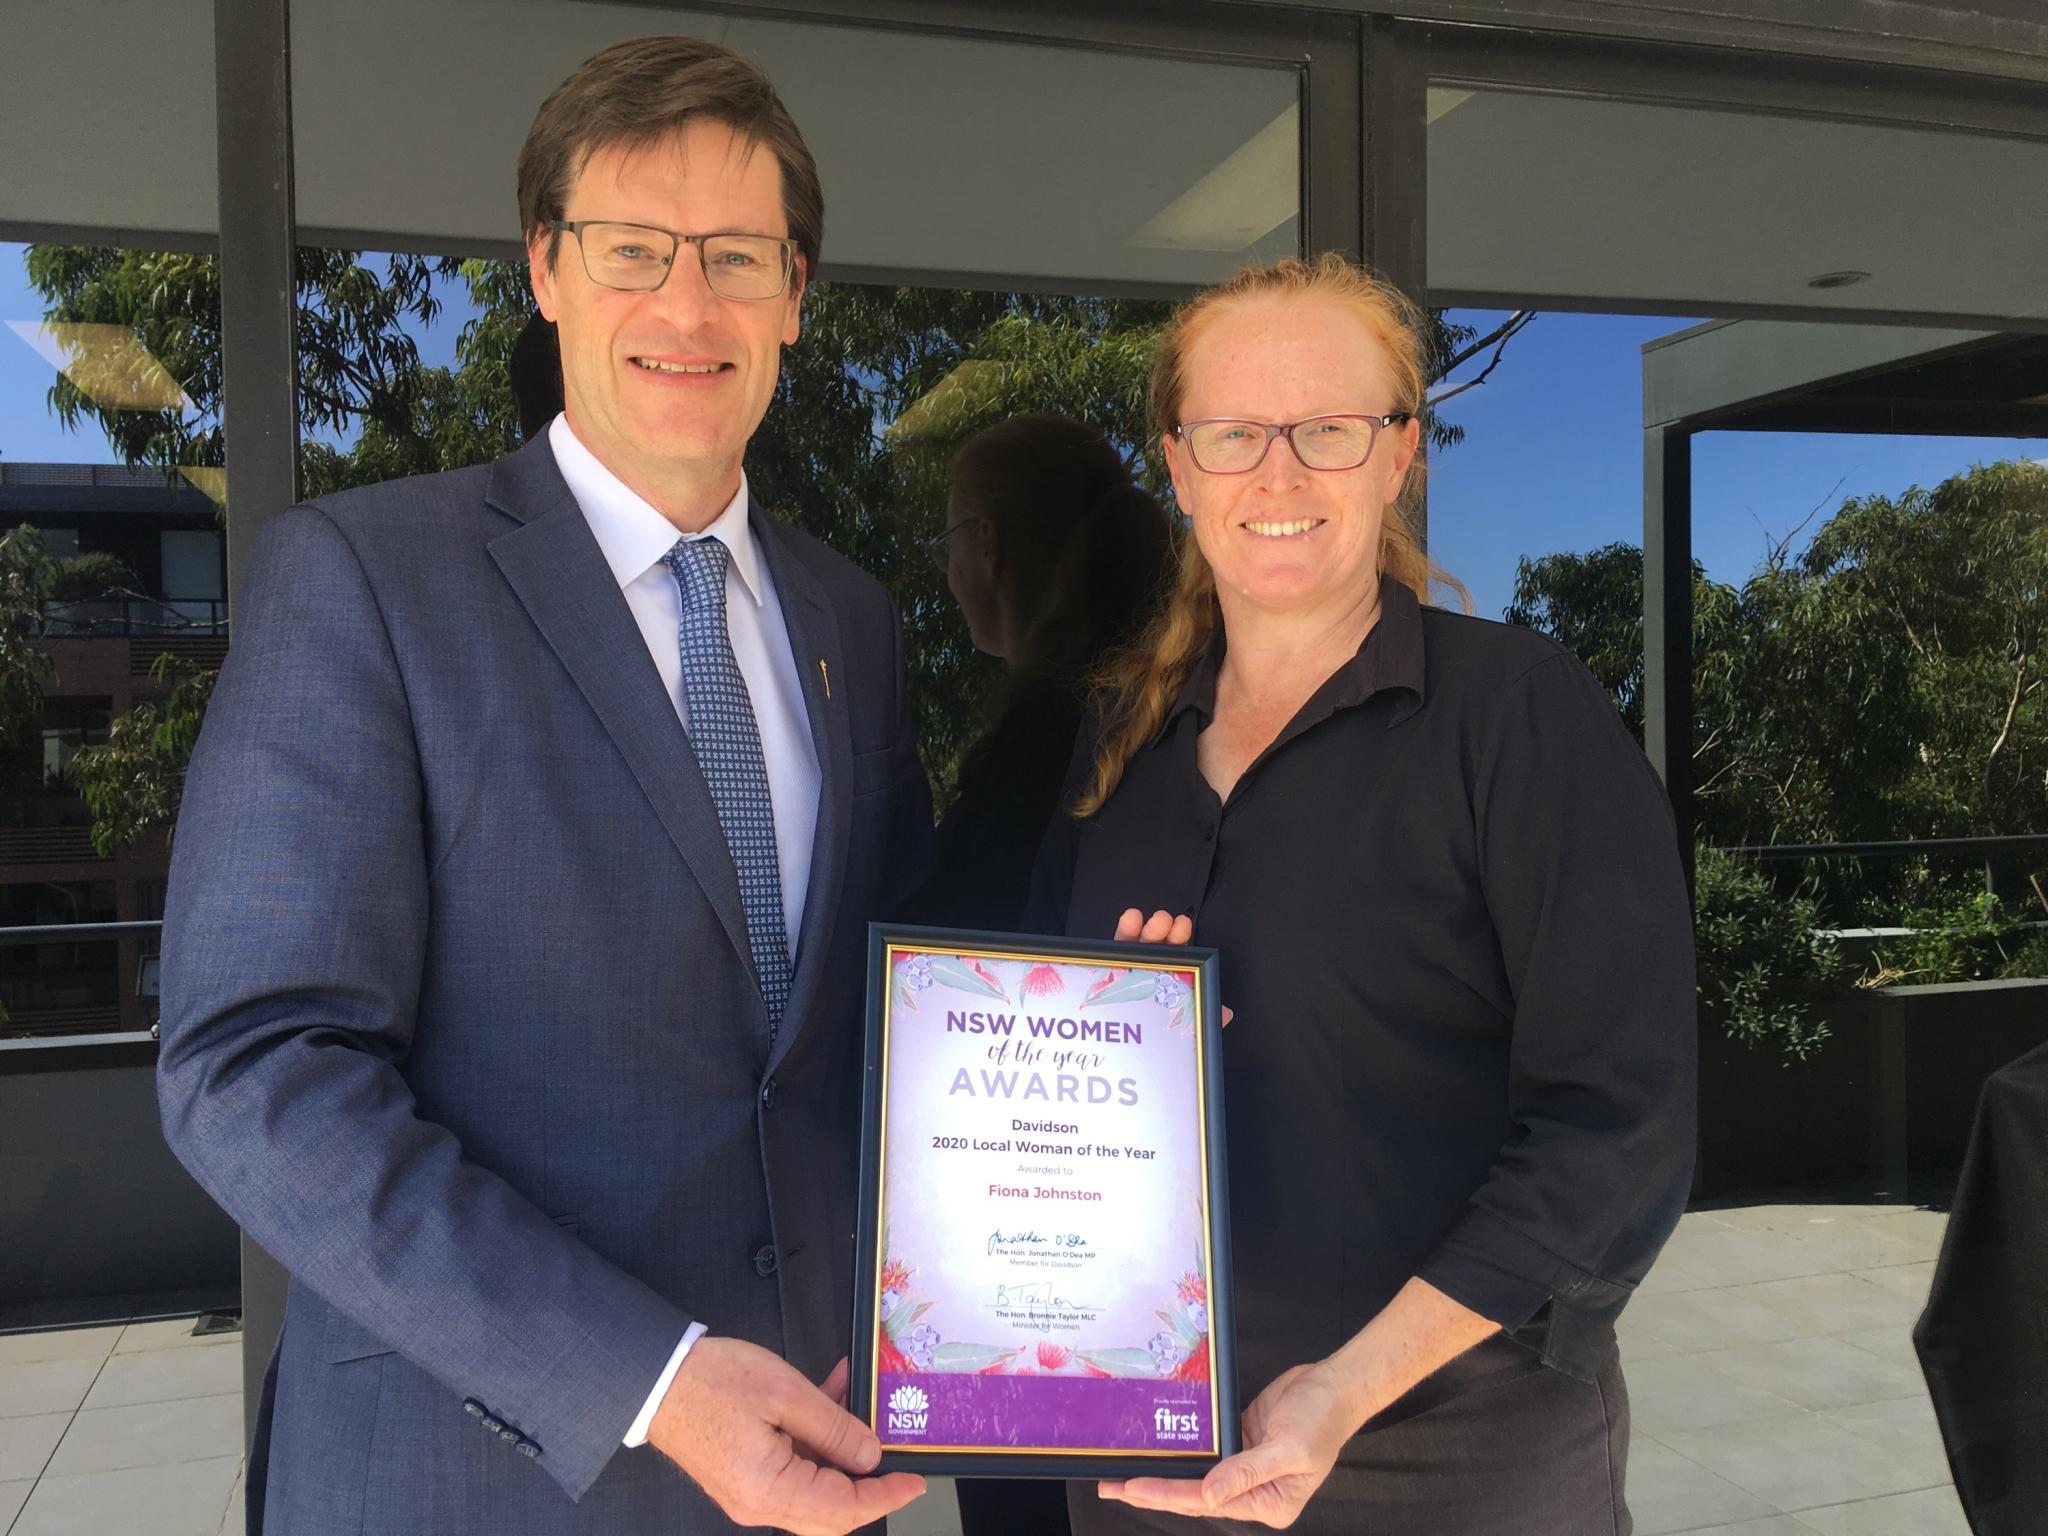 Jonathan O'Dea presents Fiona Johnston with the NSW Woman of the Year Award for Davidson 2020 Local Woman of the year